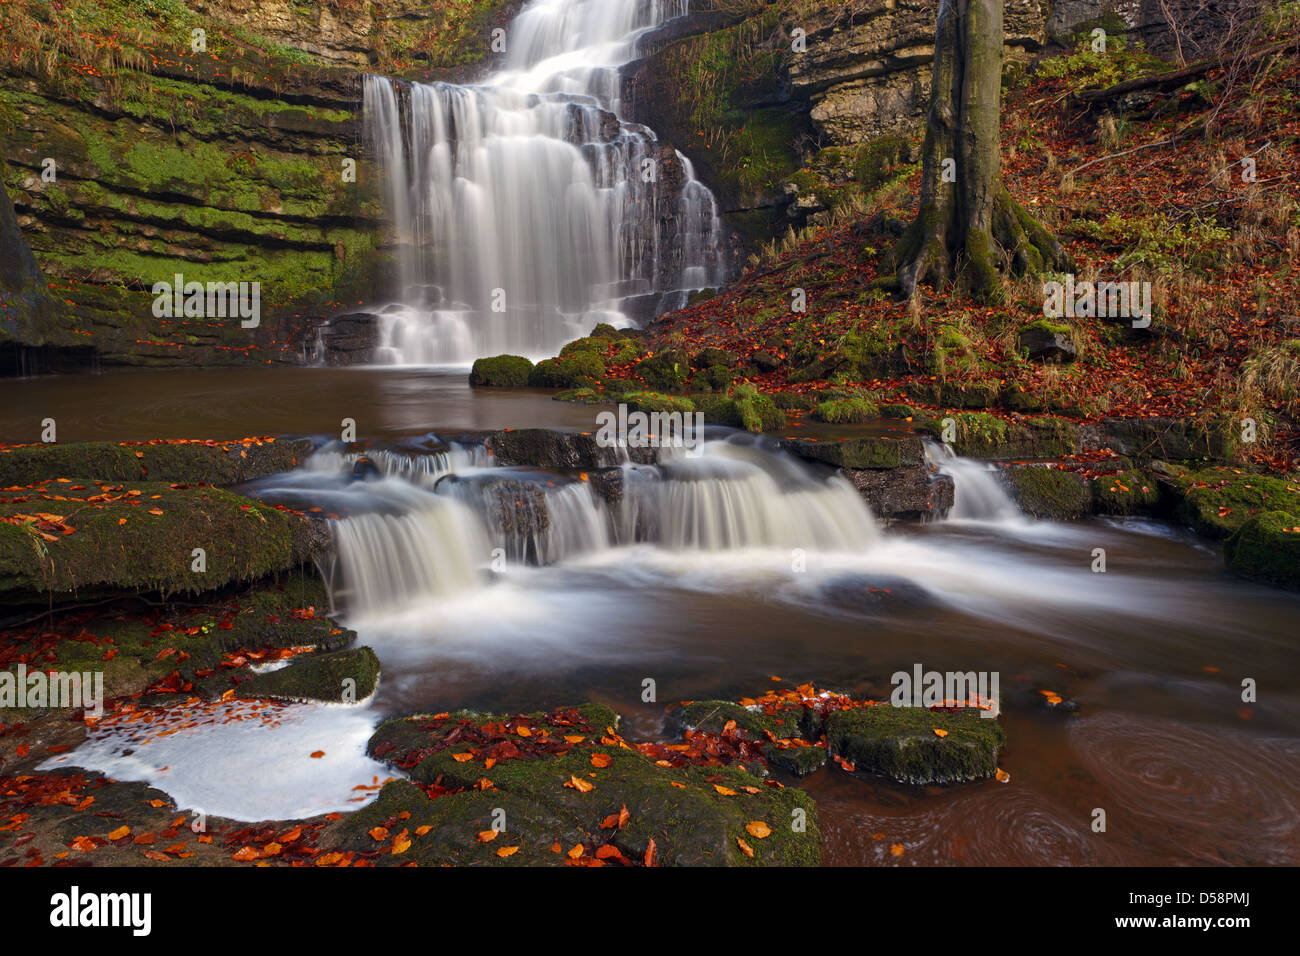 Scalebar Force waterfall in the Yorkshire Dales - Stock Image